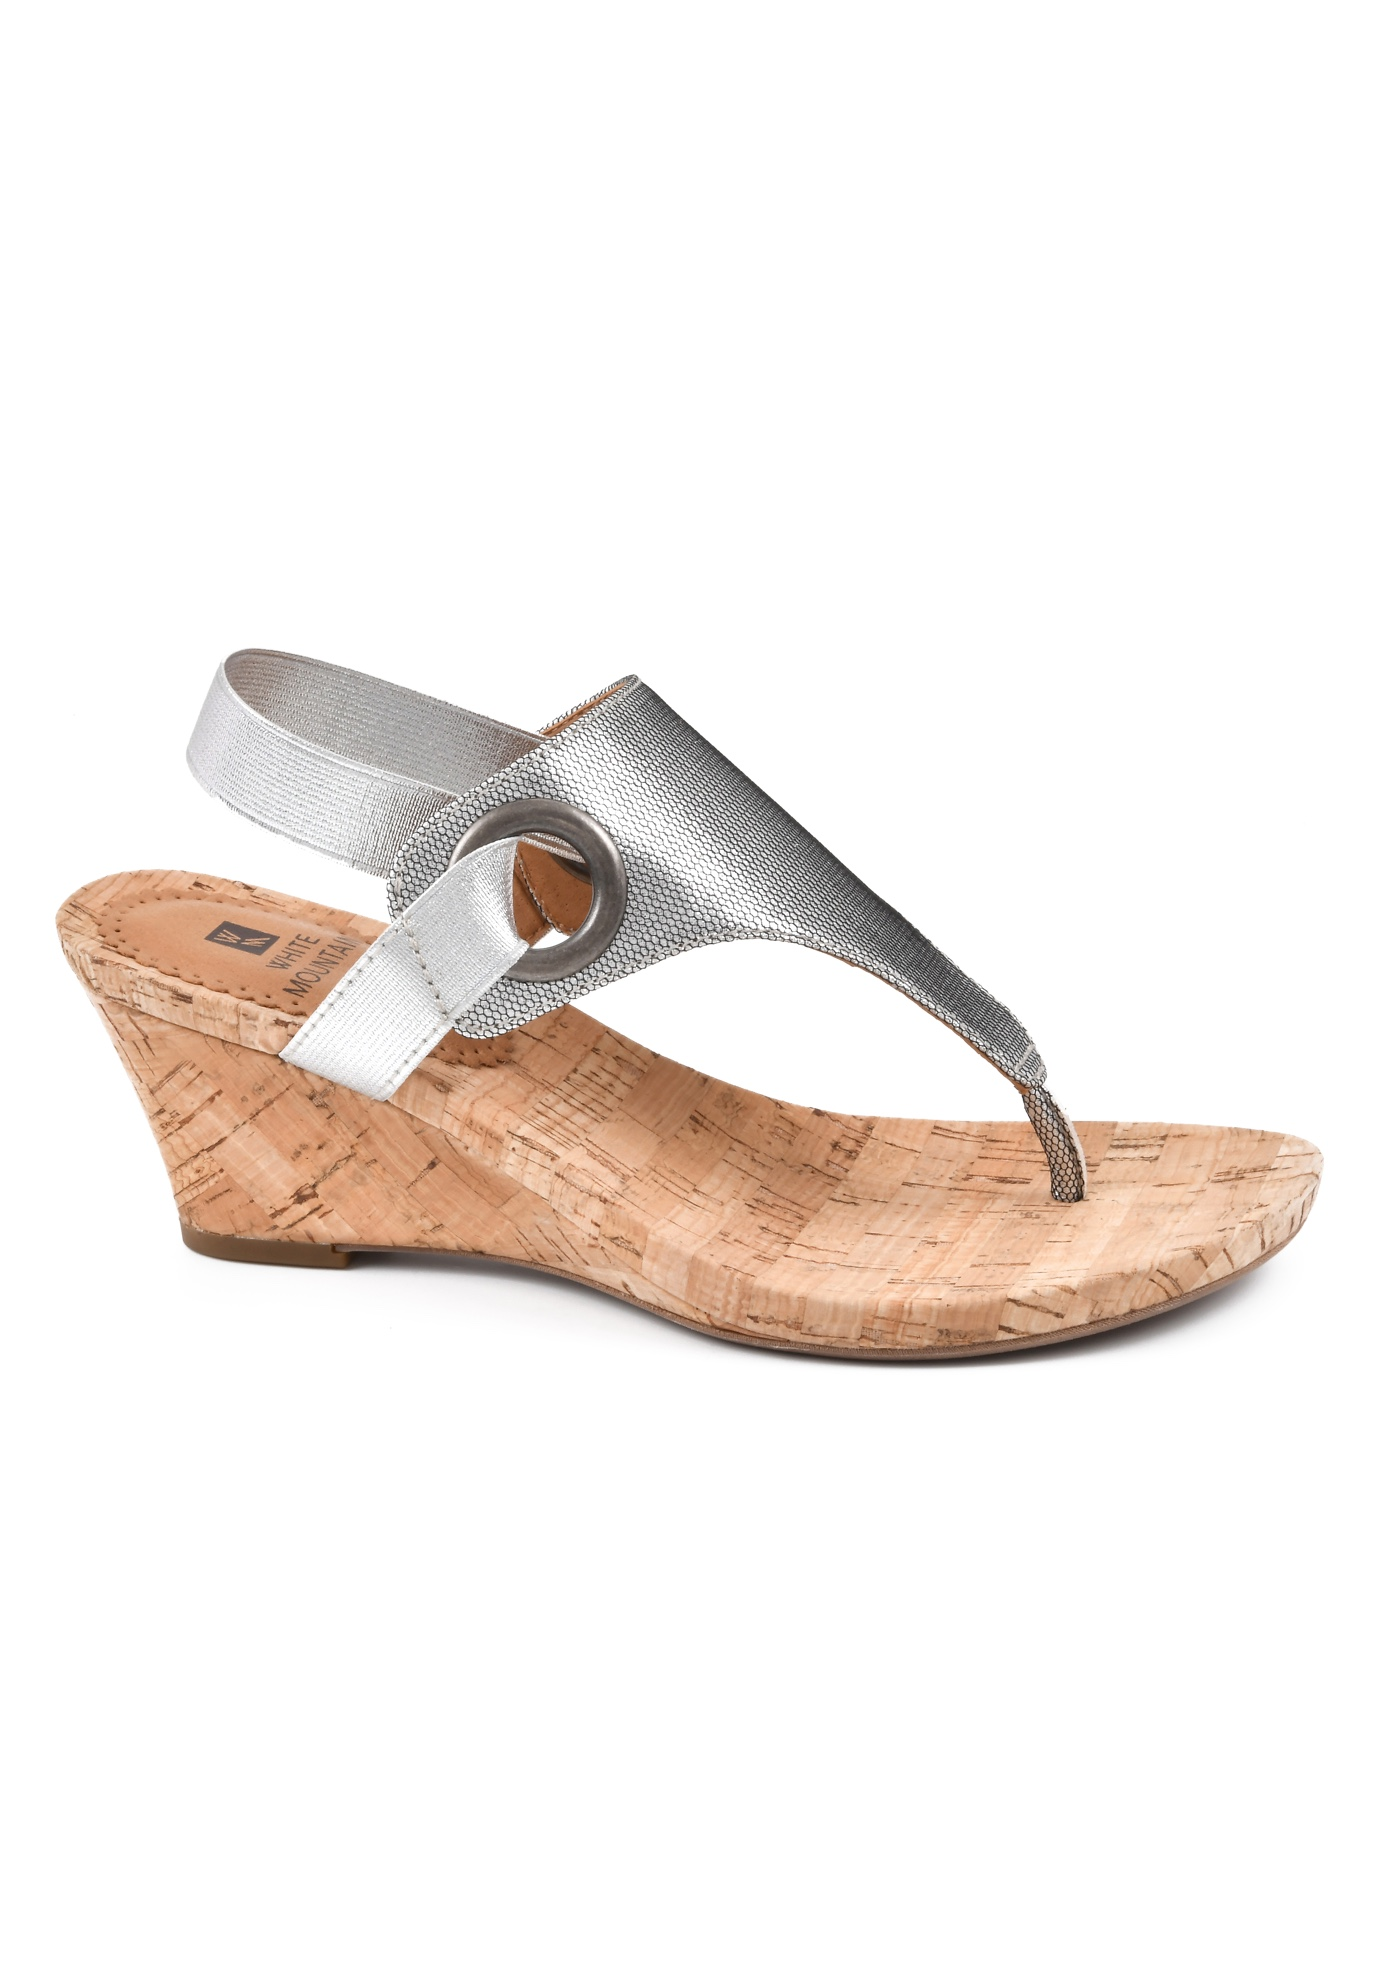 Aida Sandal by White Mountain,